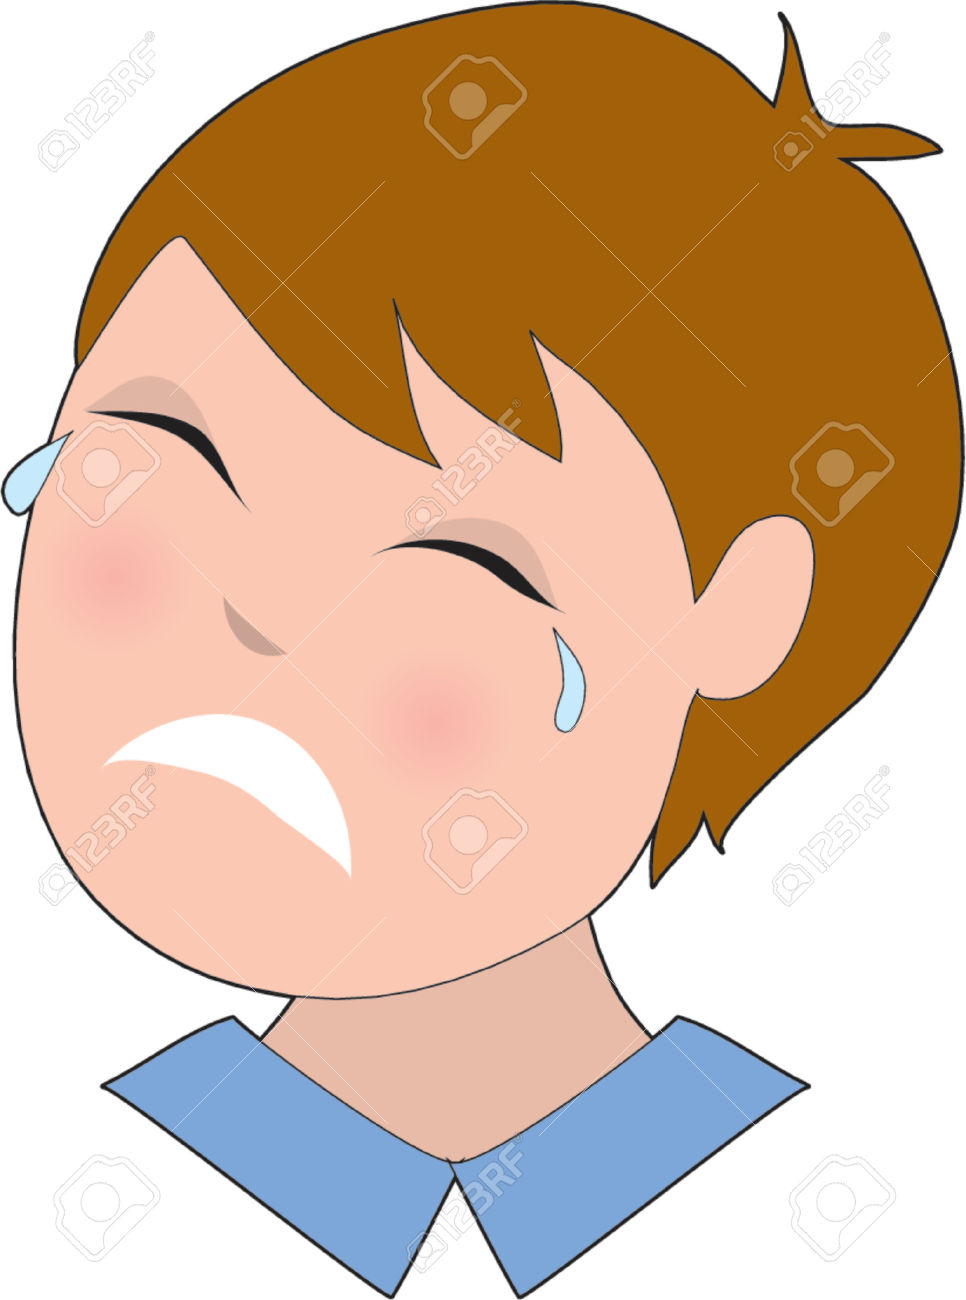 Sad Crying Face Clipart.